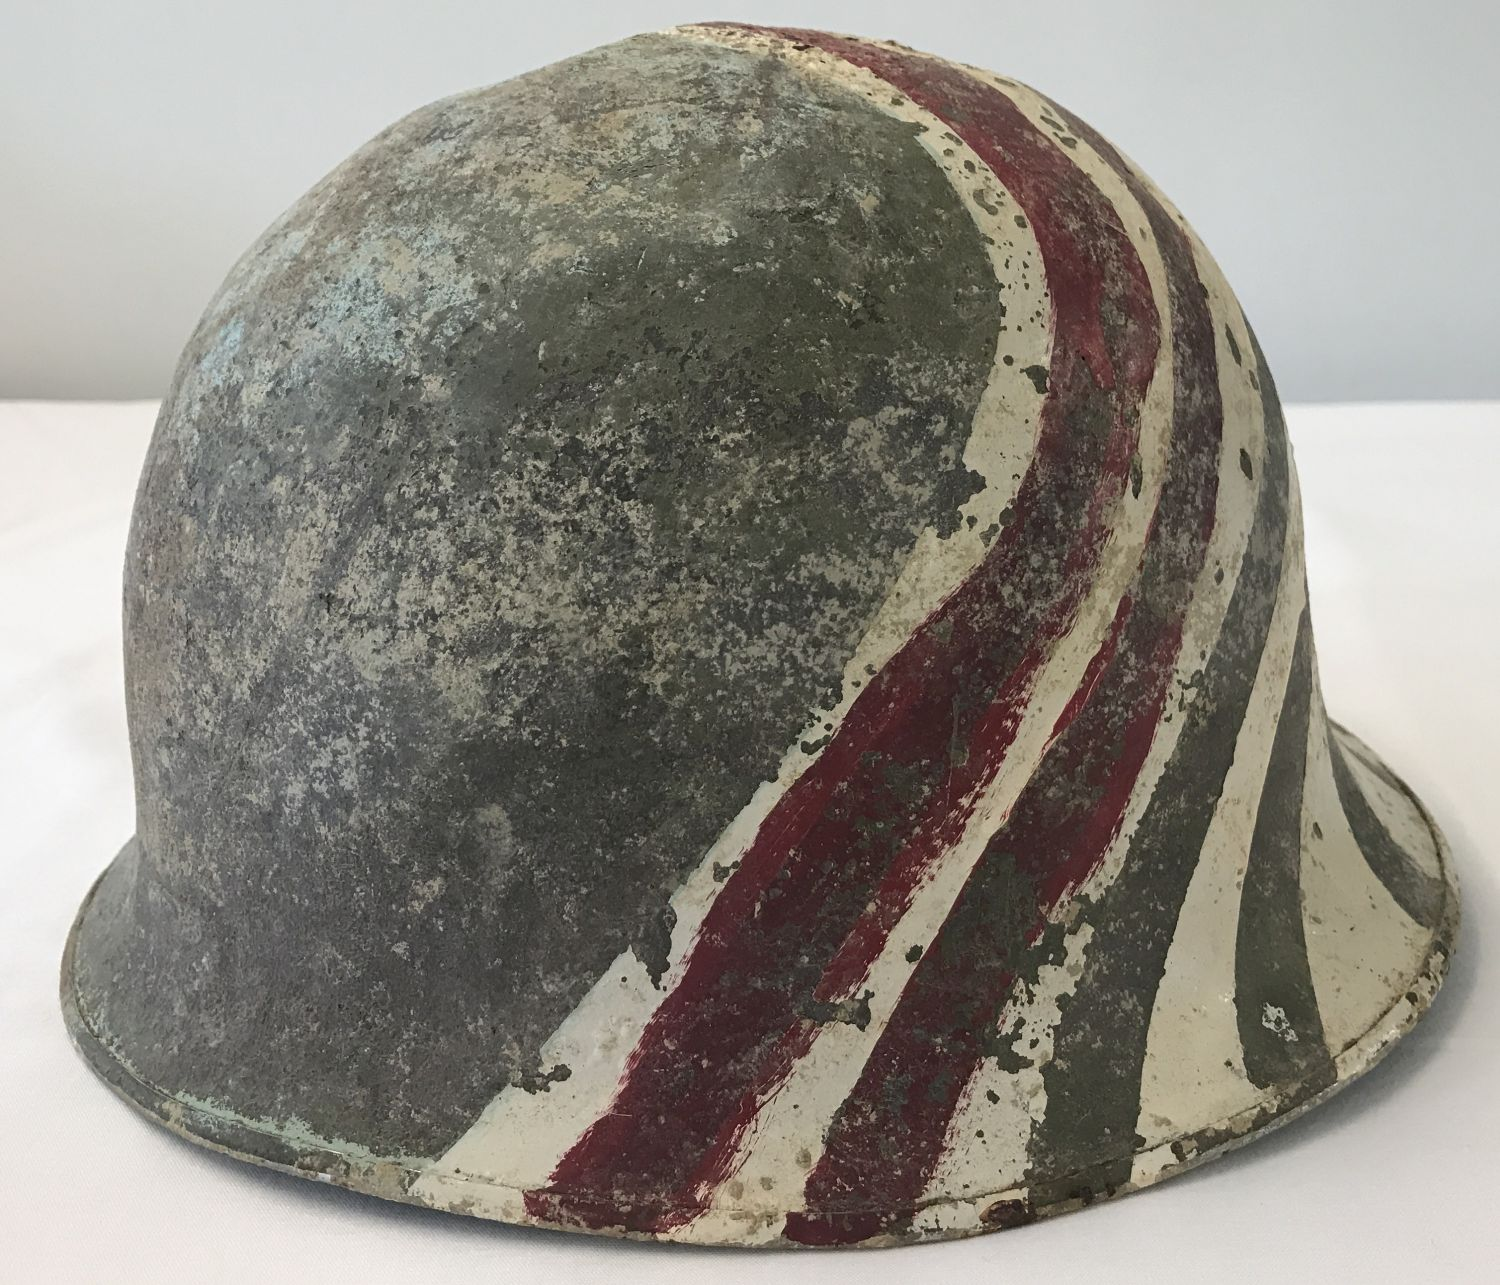 Lot 102 - A French M51 OTAN (NATO) steel helmet with hand painted markings.